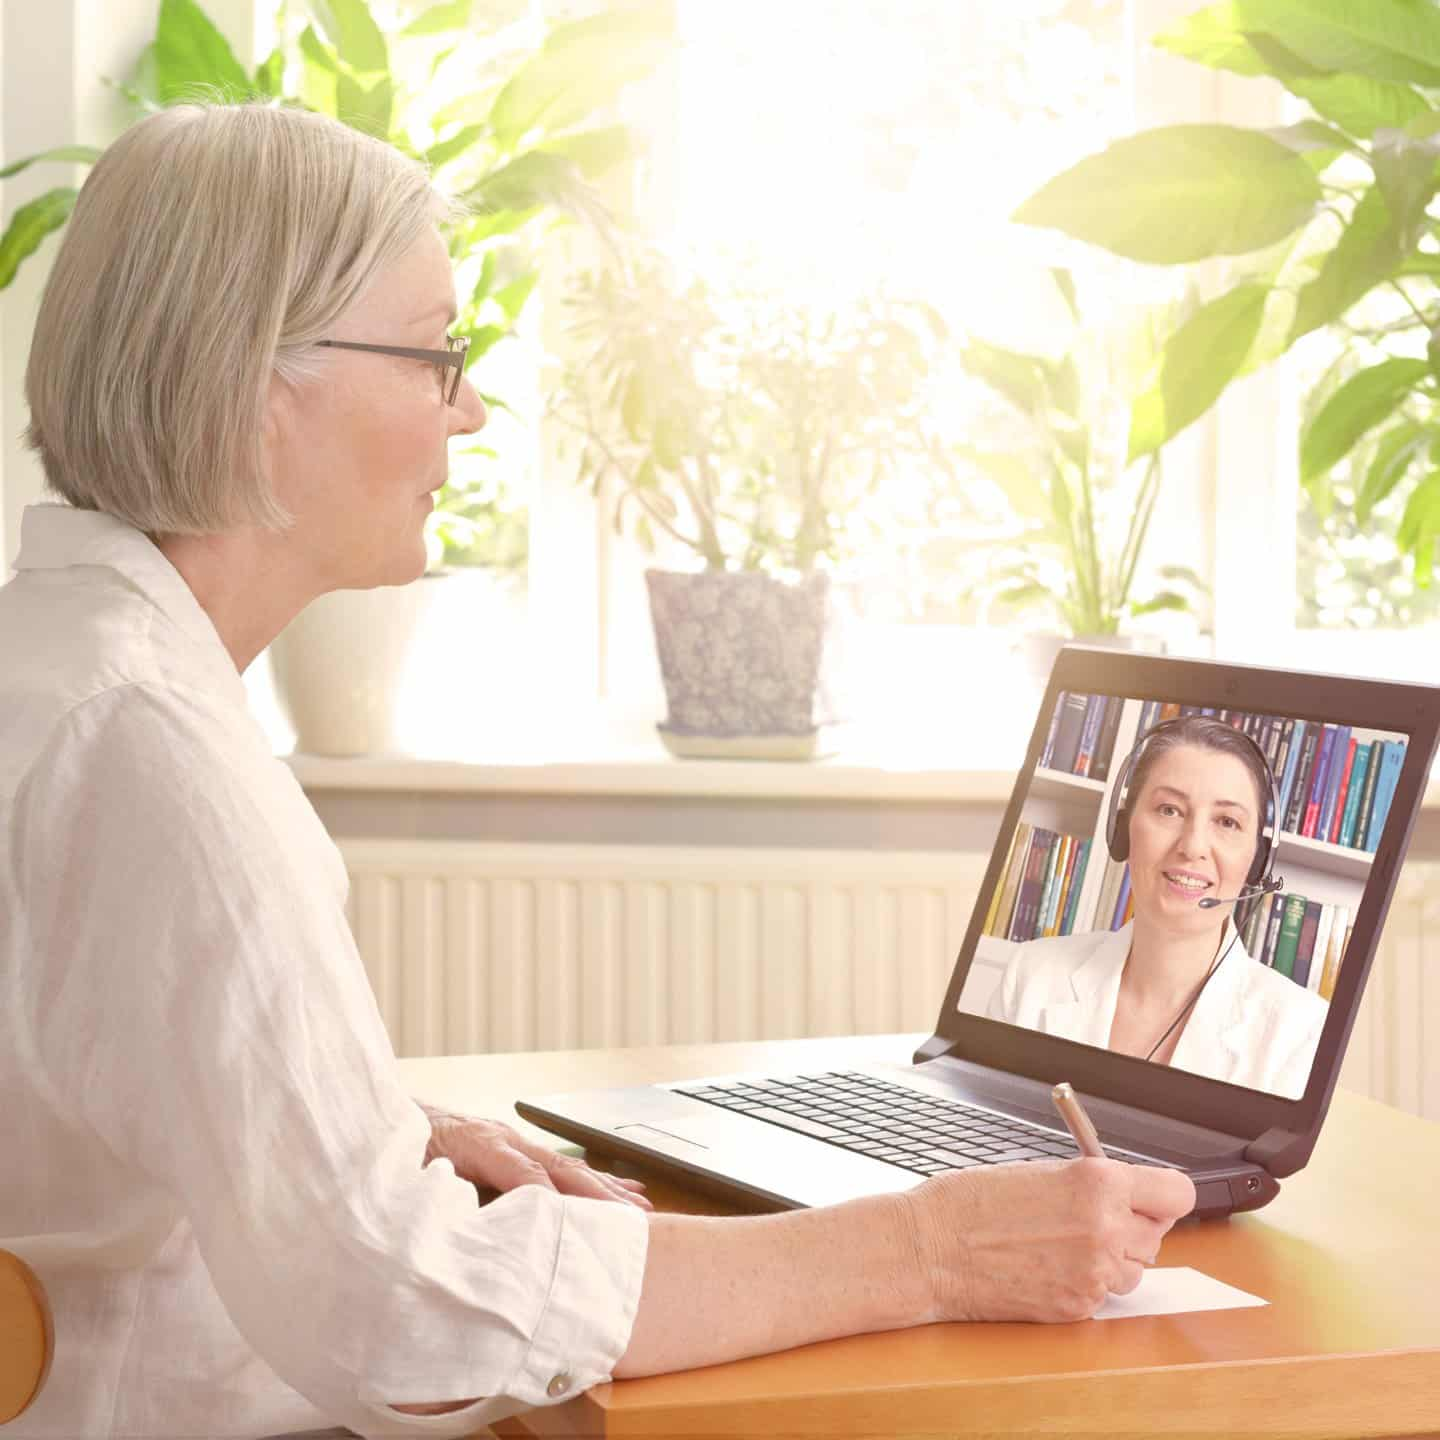 Counseling Therapy Video Chat Facetime Home business affordable web developent website design advice creative repute